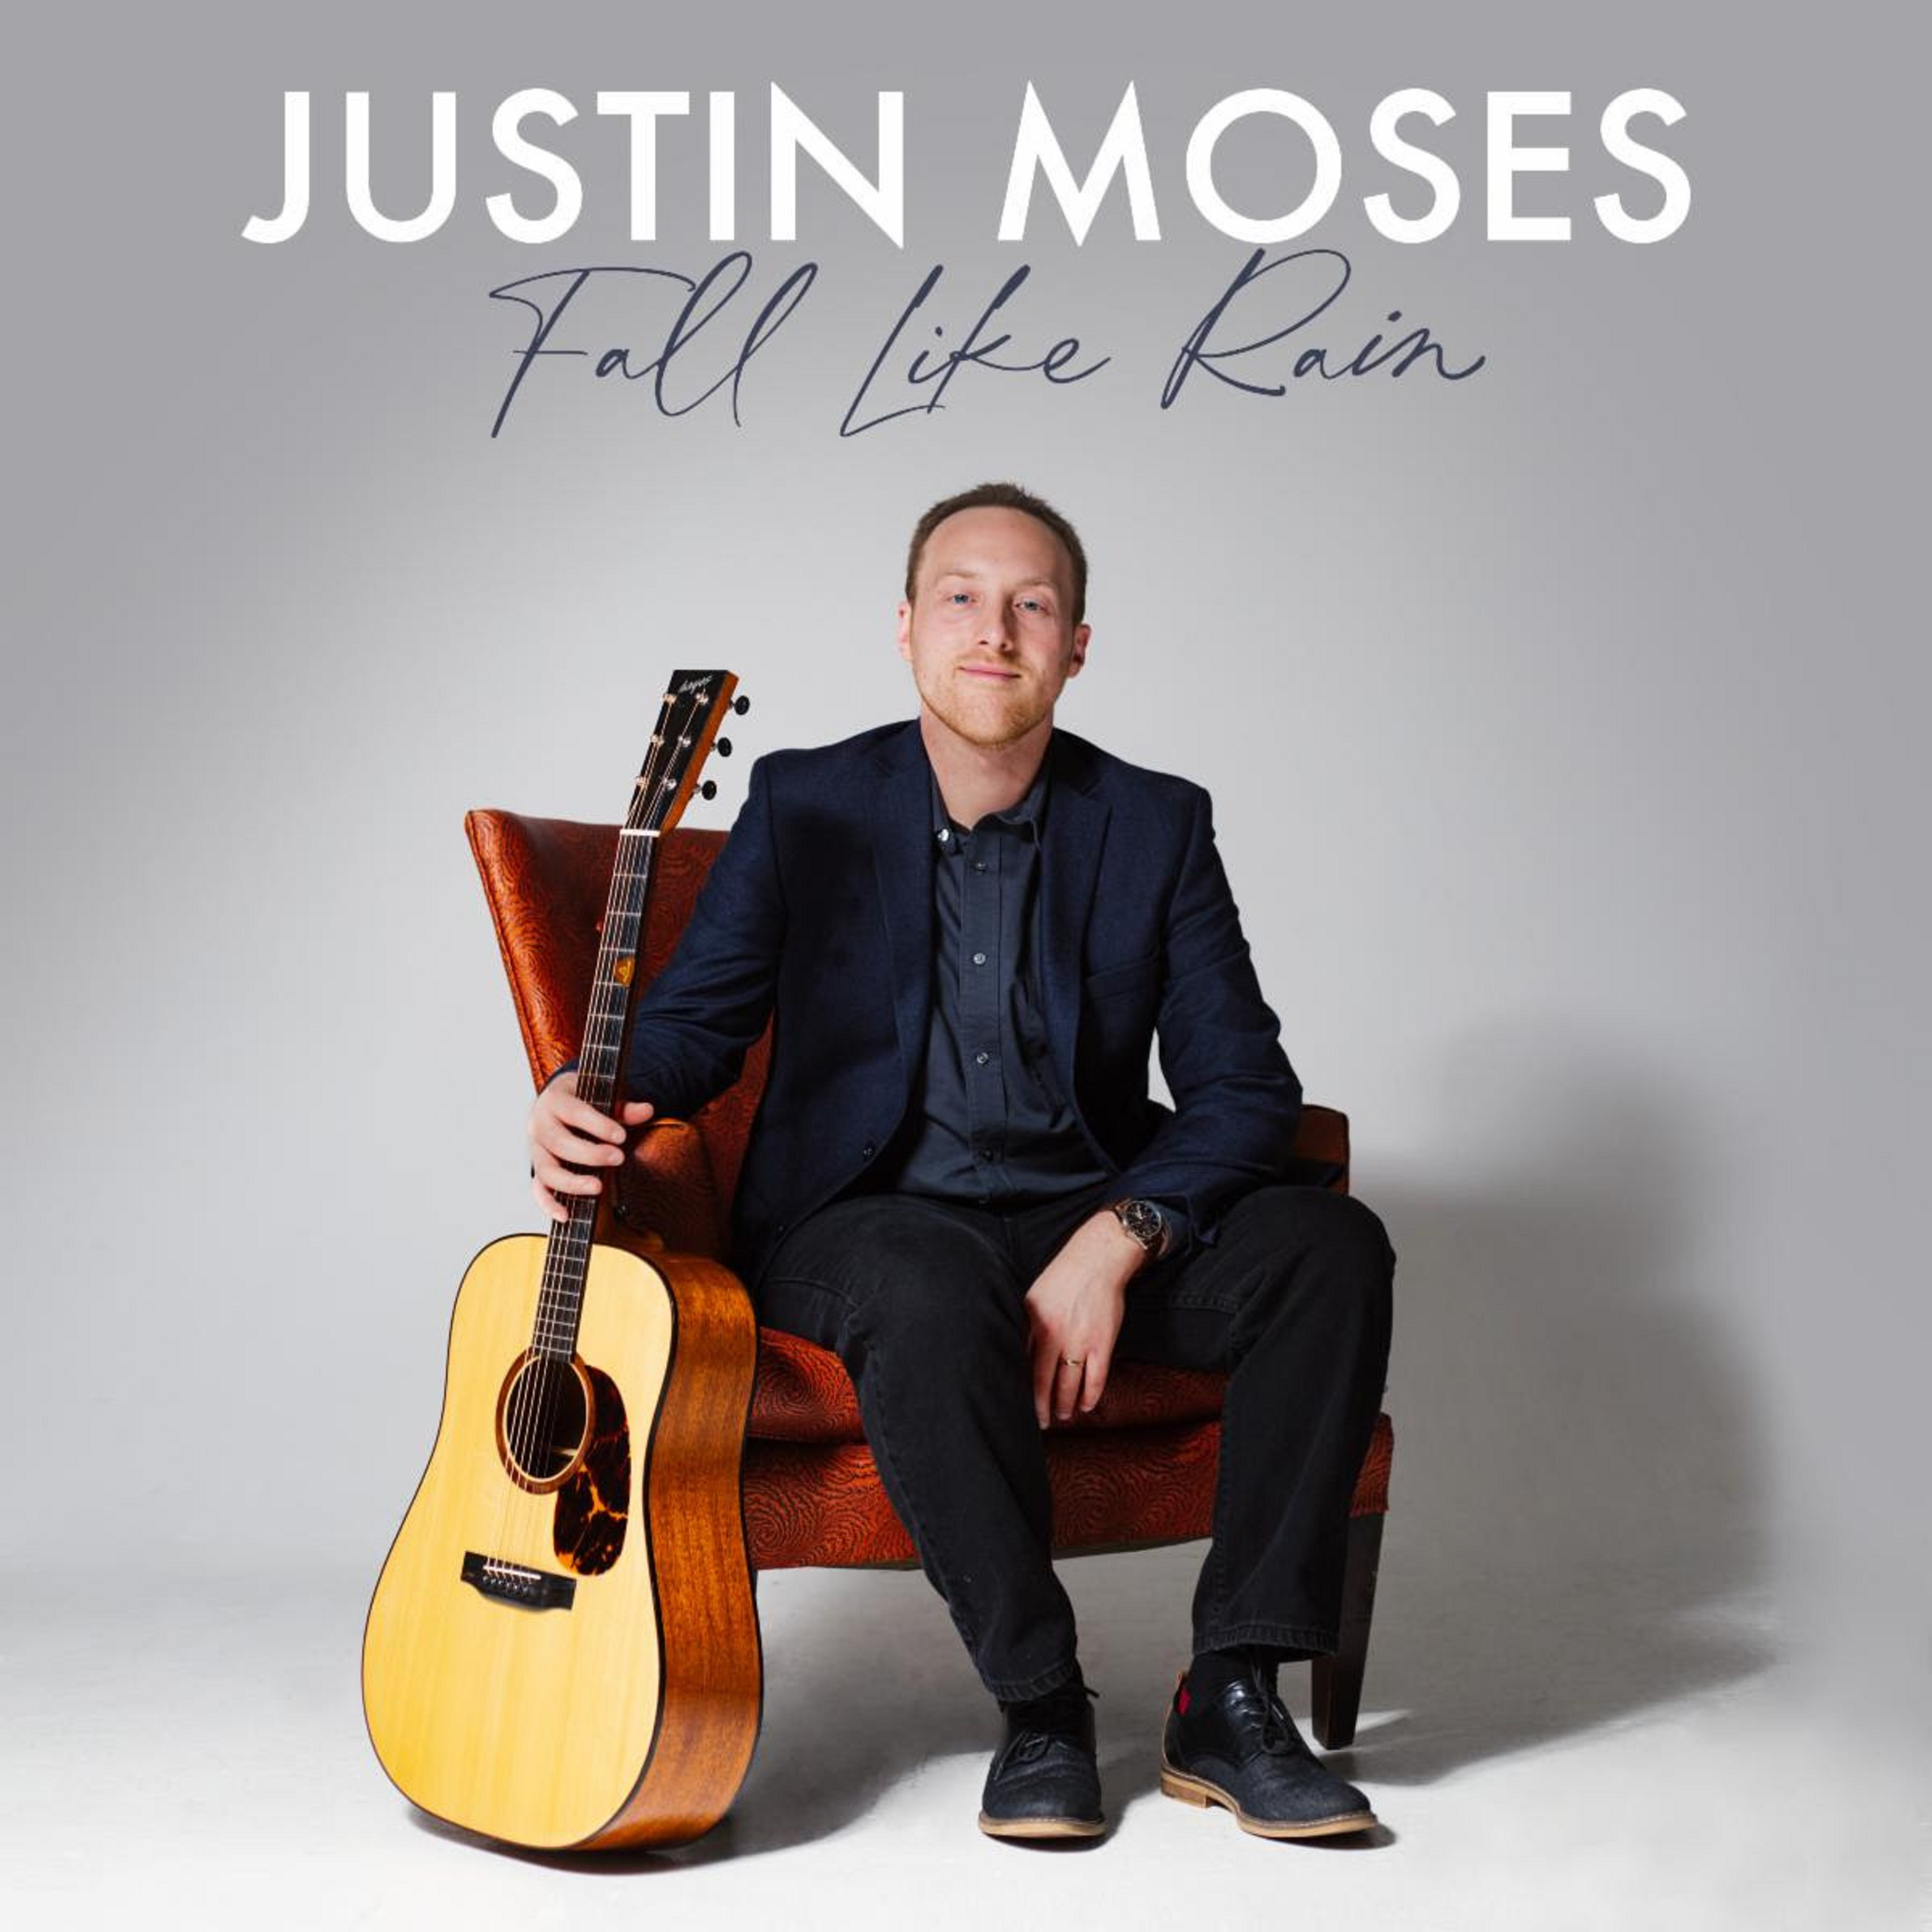 Justin Moses To Release Eclectic New Album Fall Like Rain On January 22nd